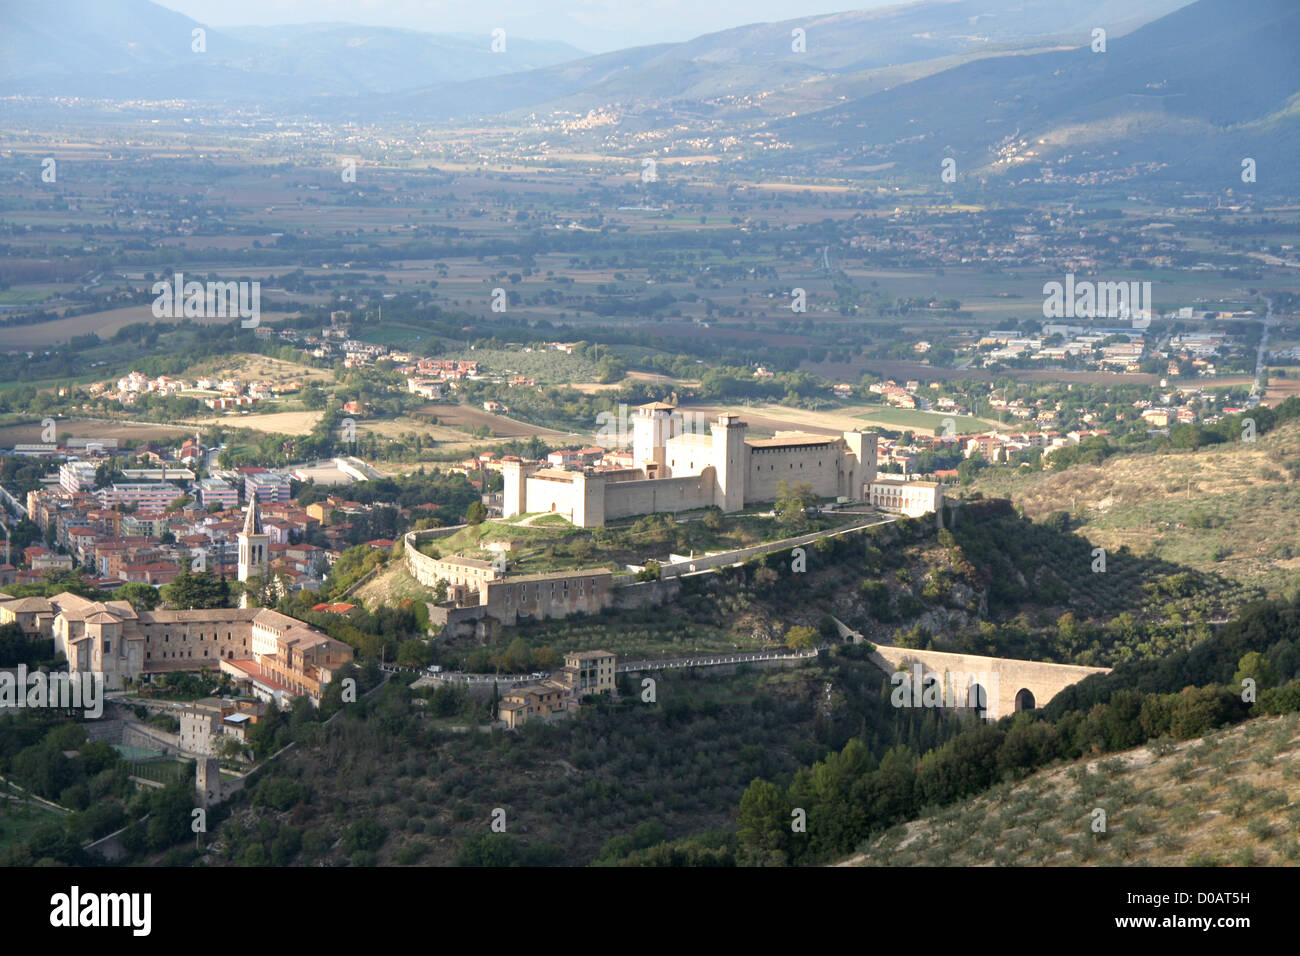 The walled rocca fortress and town of Spoleto from San Giuliano - Stock Image